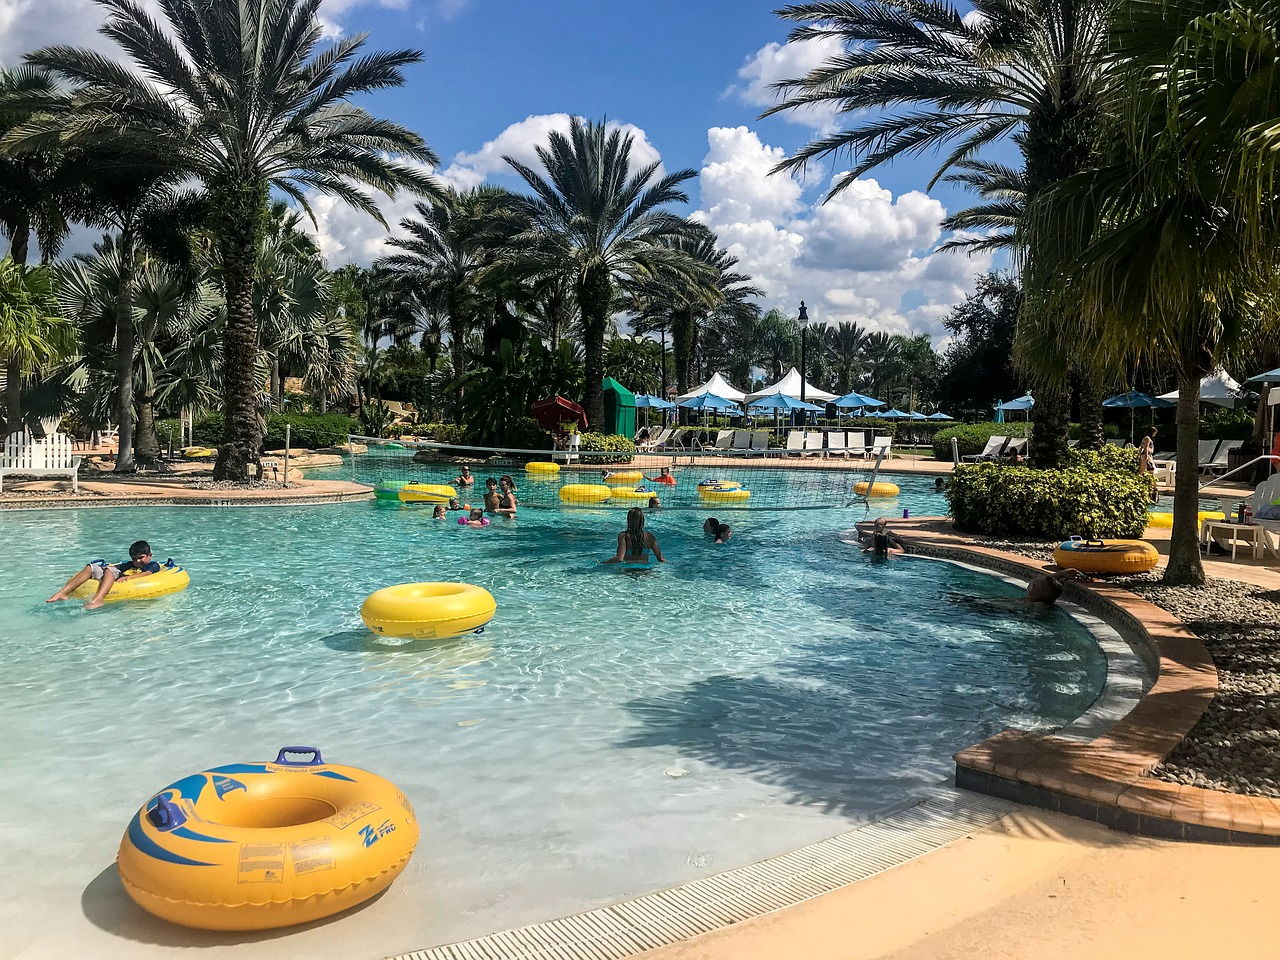 Water Park pool with floats and people swimming.